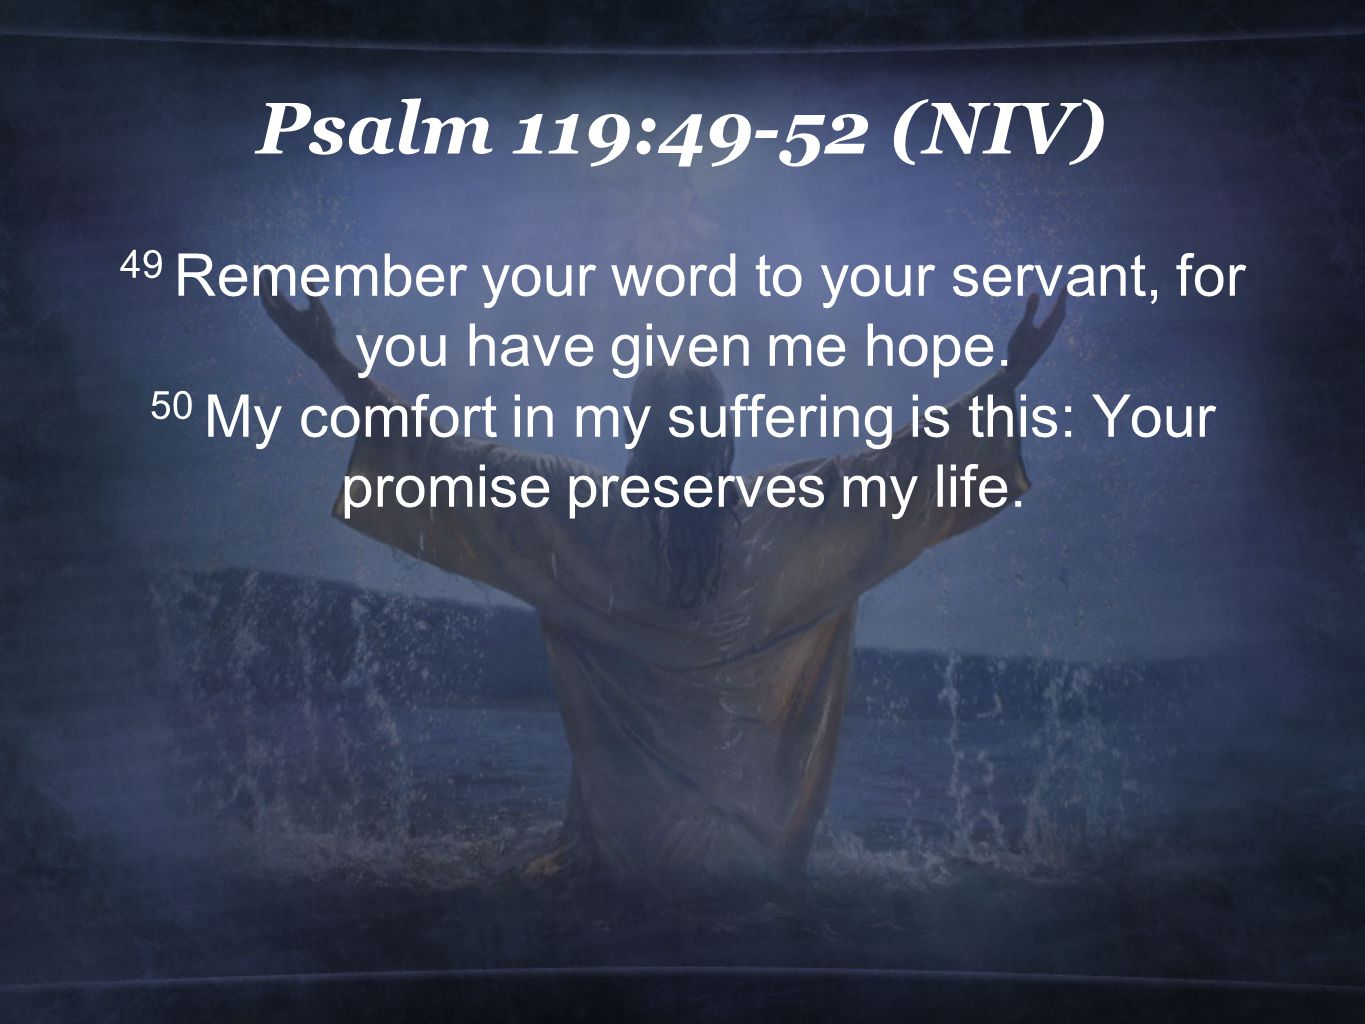 Psalm 119:49-52 (NIV) 49 Remember your word to your servant, for you have given me hope.